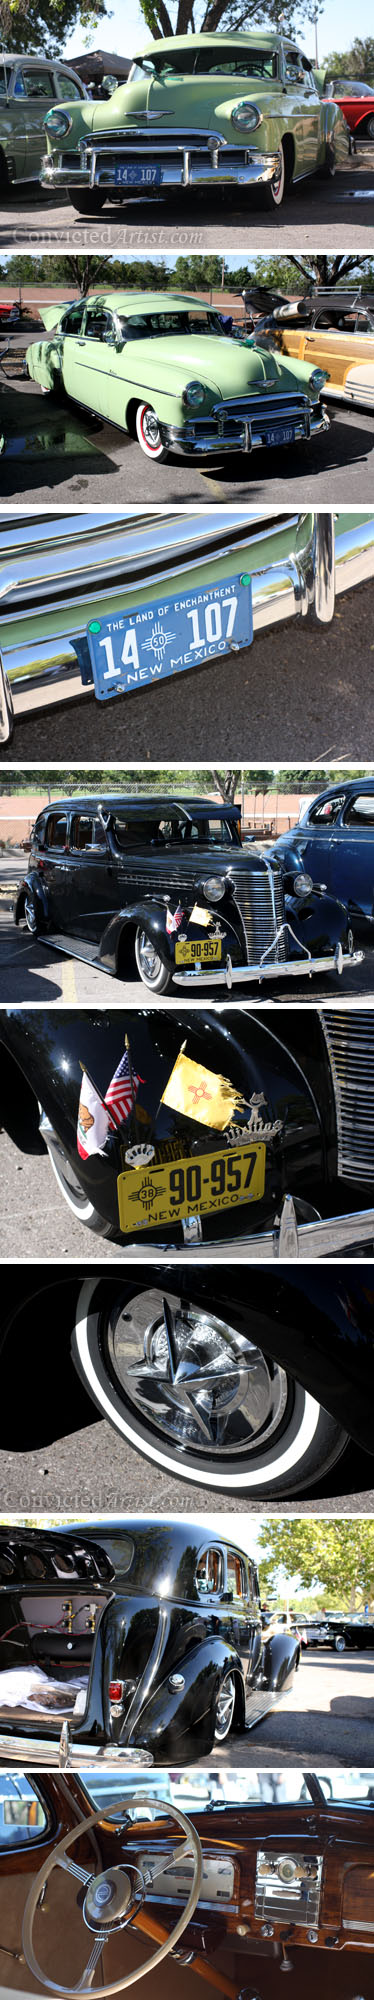 Viejitos Car Club